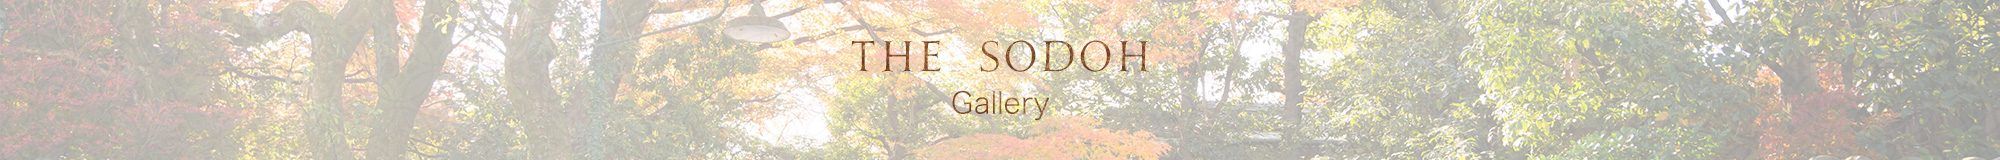 THE SODOH GALLERY